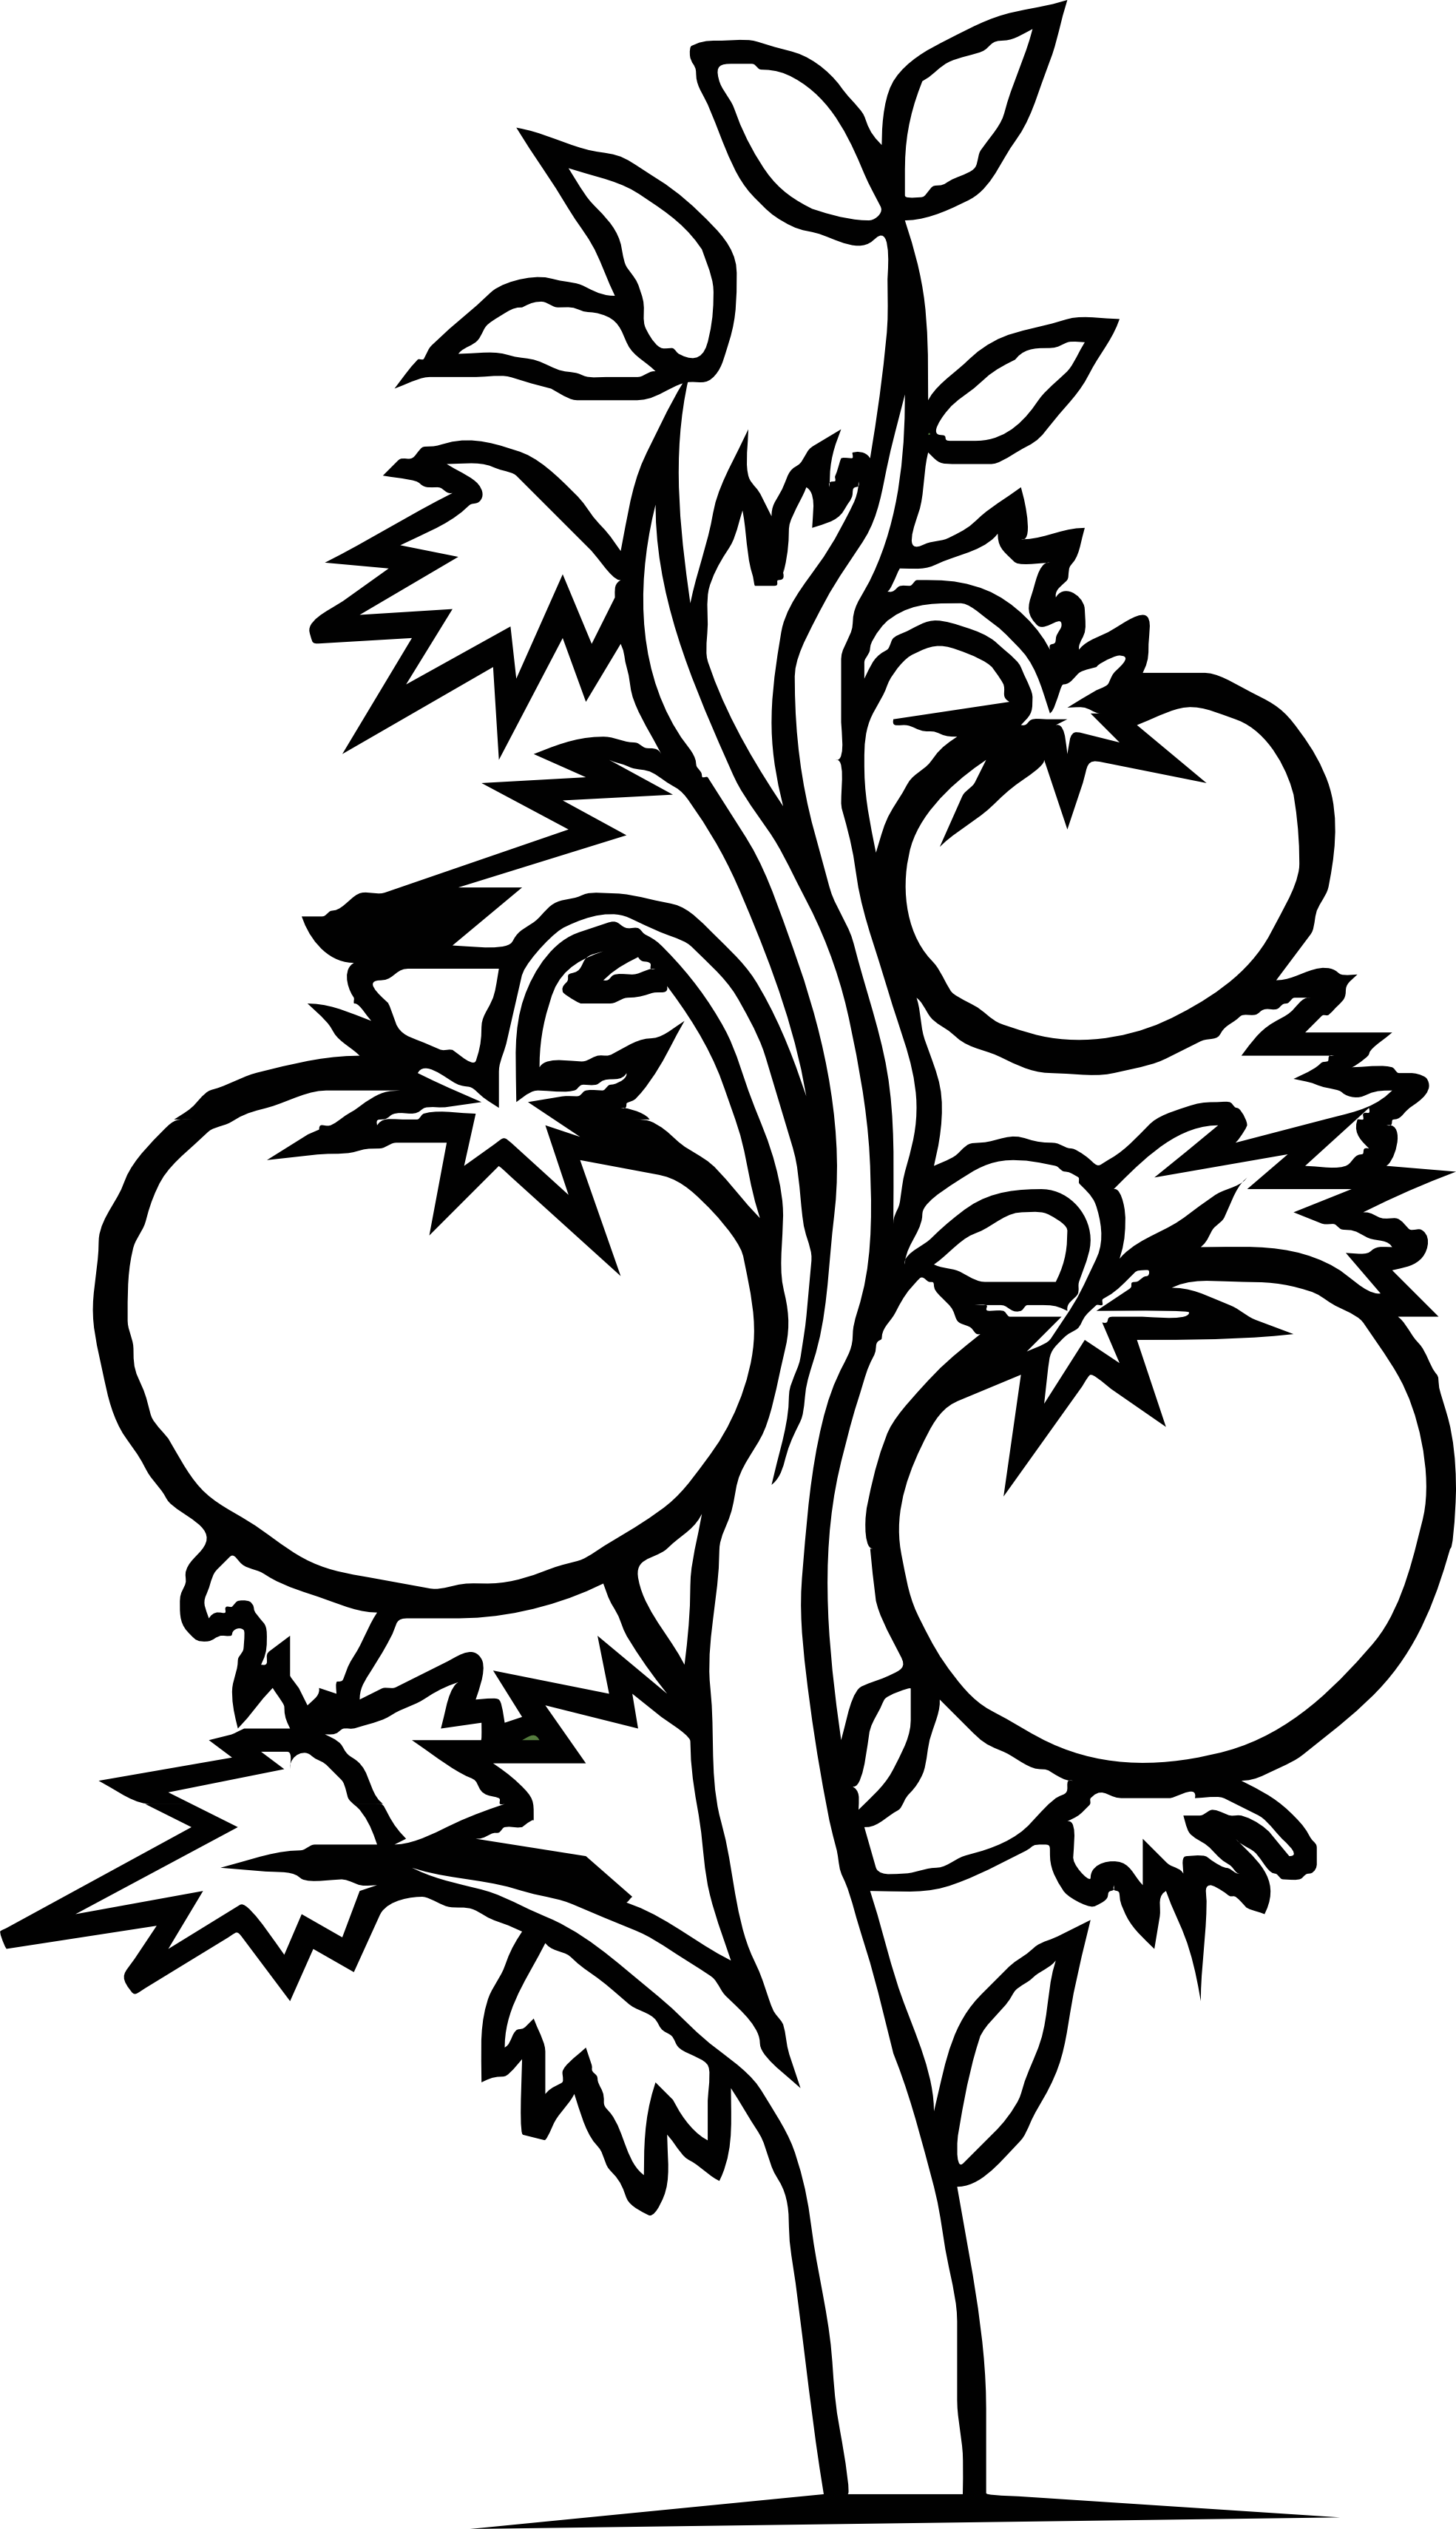 drawings of plants black and white hibiscus flowers with monstera leaves hand drawings plants of